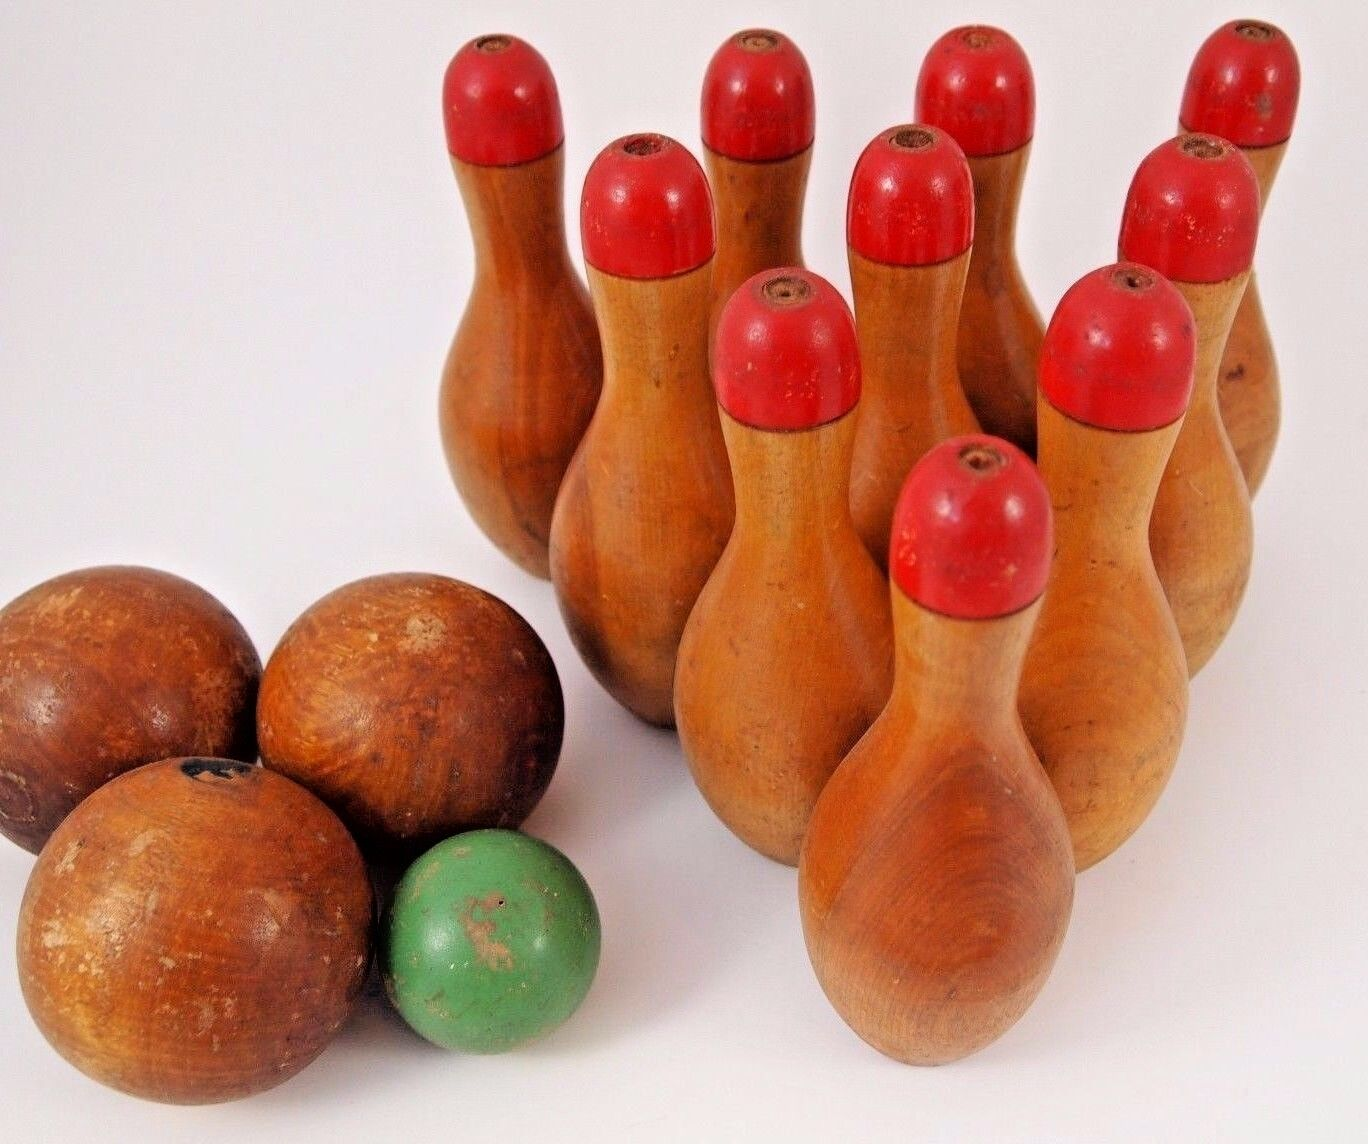 SKITTLE Lawn Bowling Game Ten Wood Turned Pins Balls Tabletop RED 6 1 4